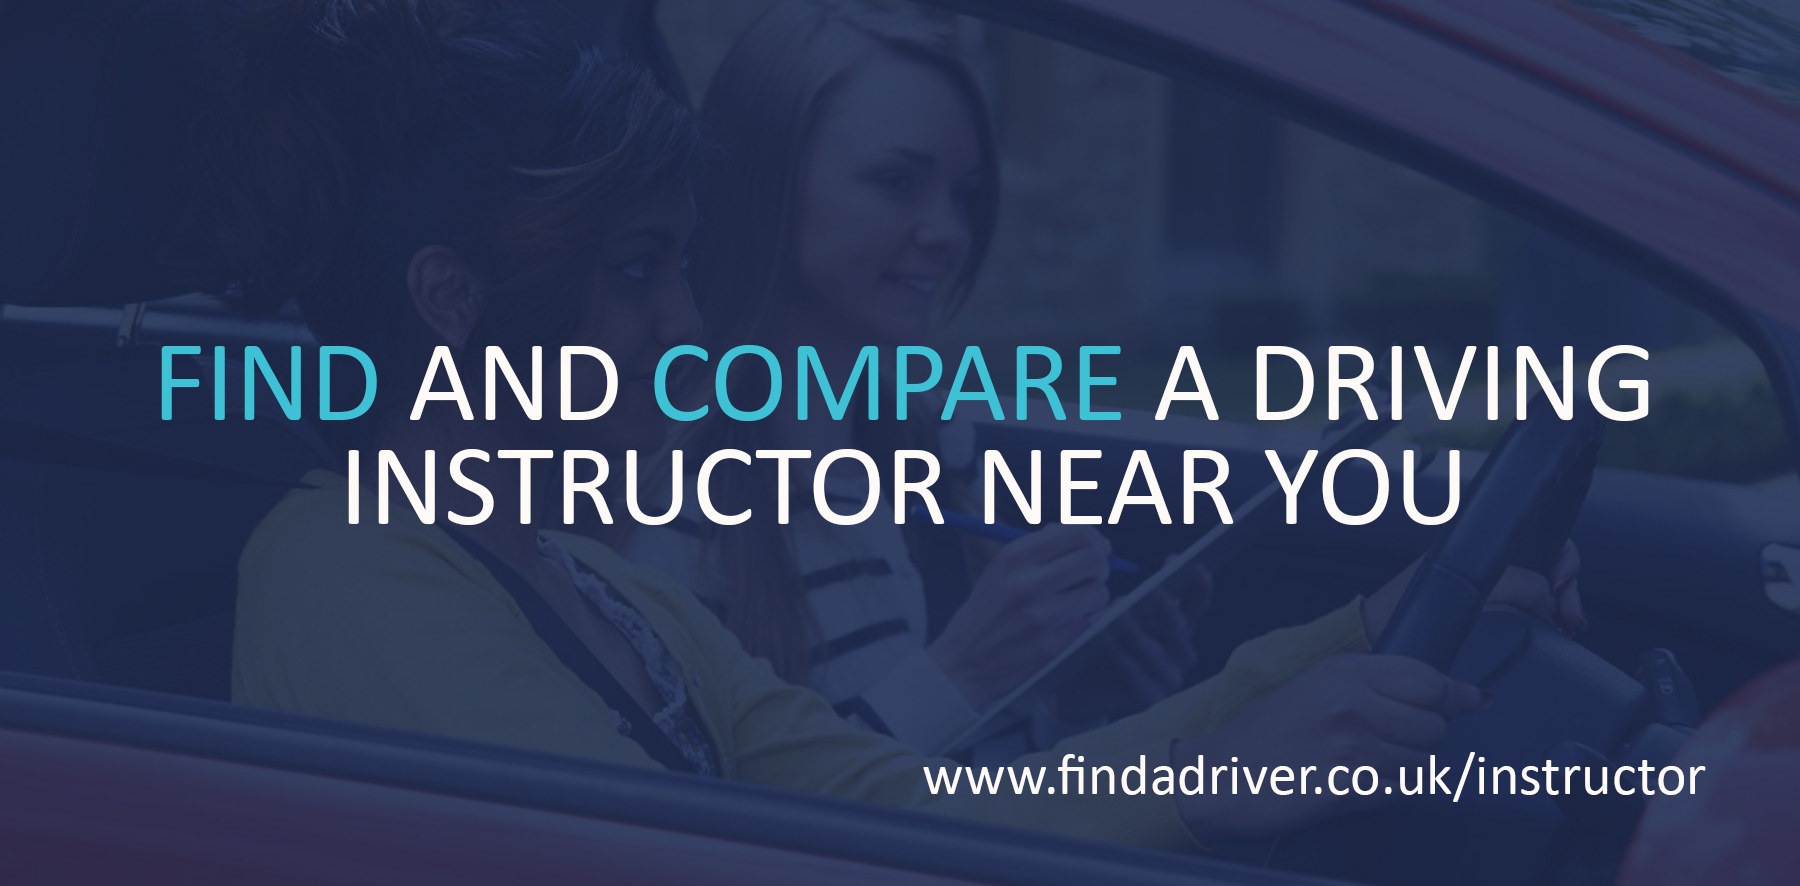 Find a driving instructor - banner